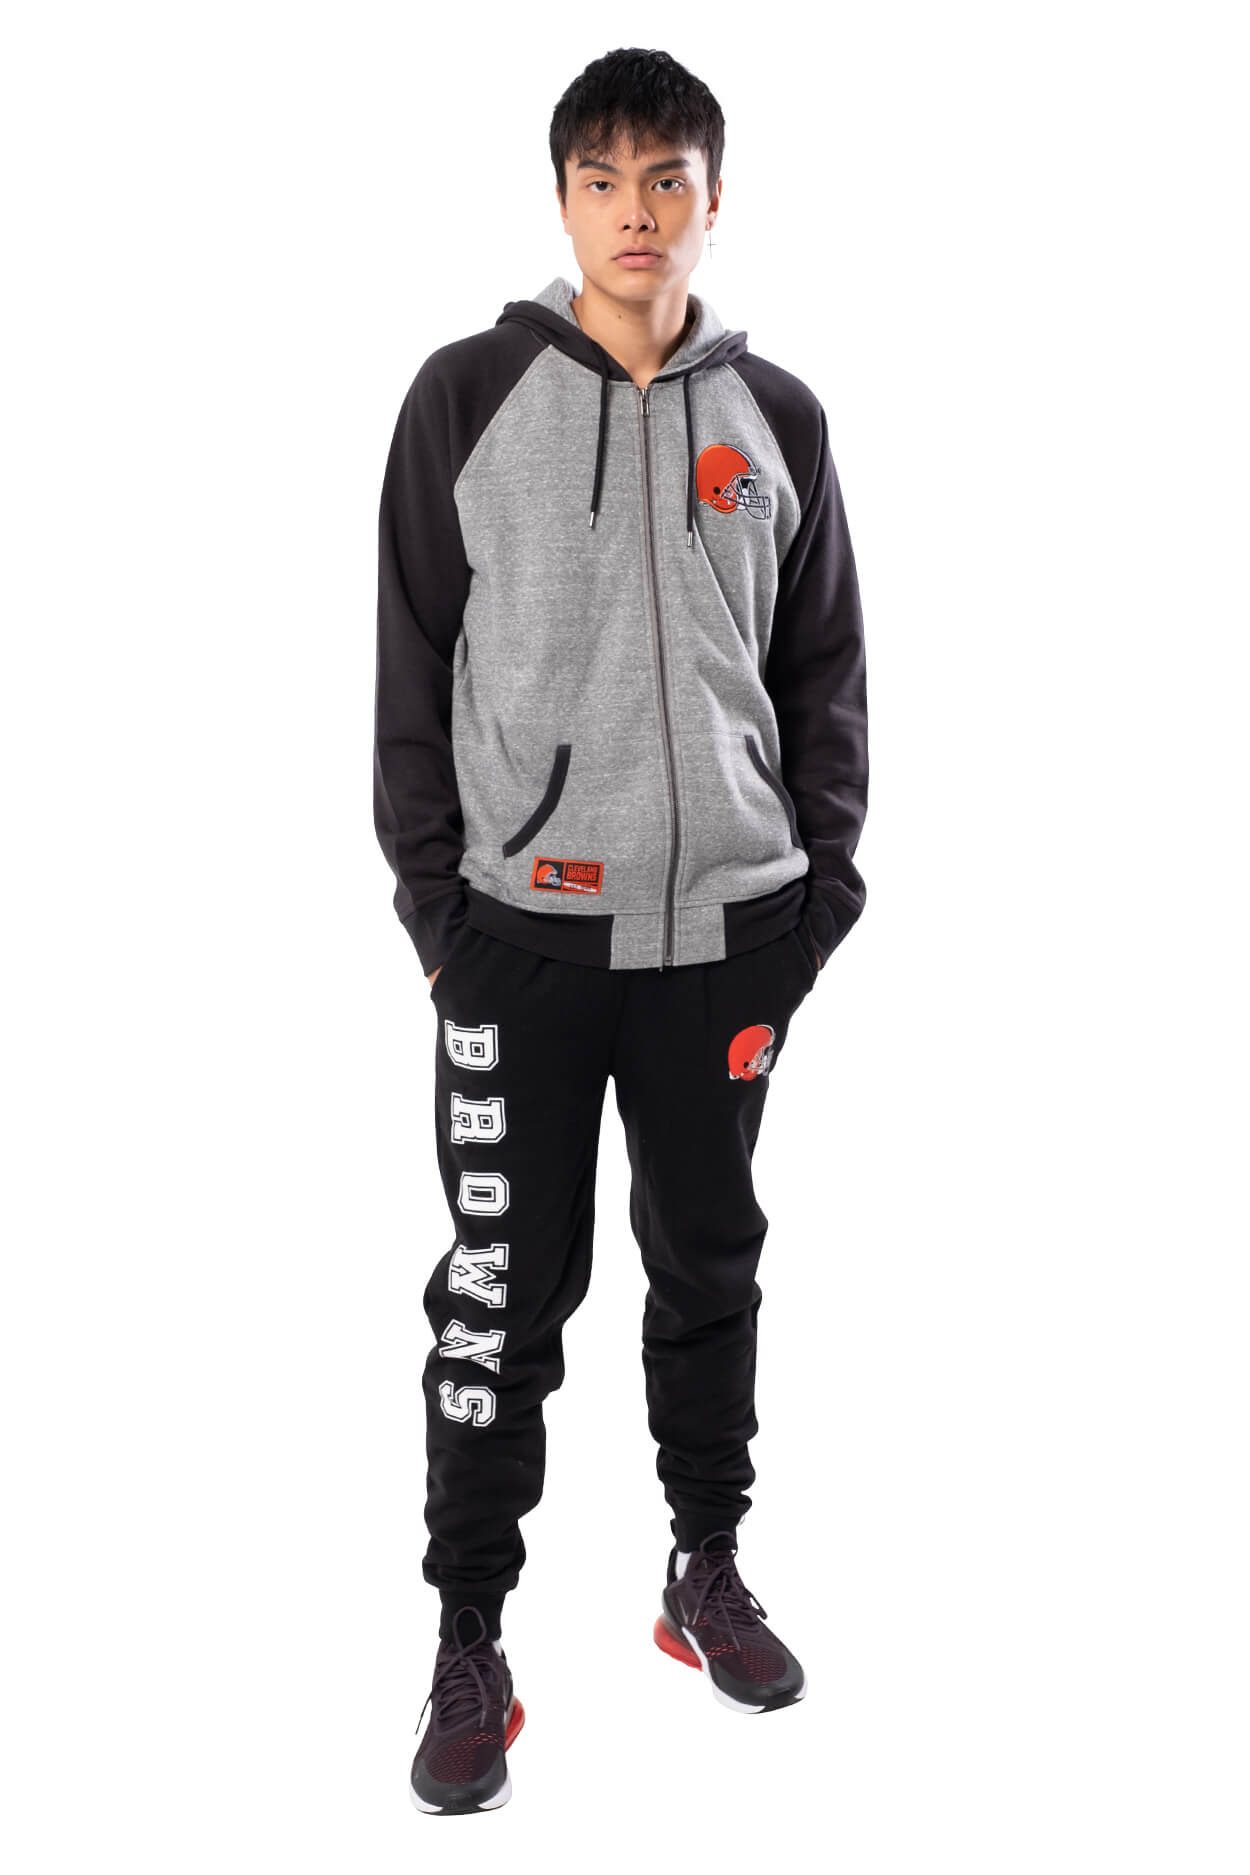 NFL Cleveland Browns Men's Full Zip Hoodie|Cleveland Browns